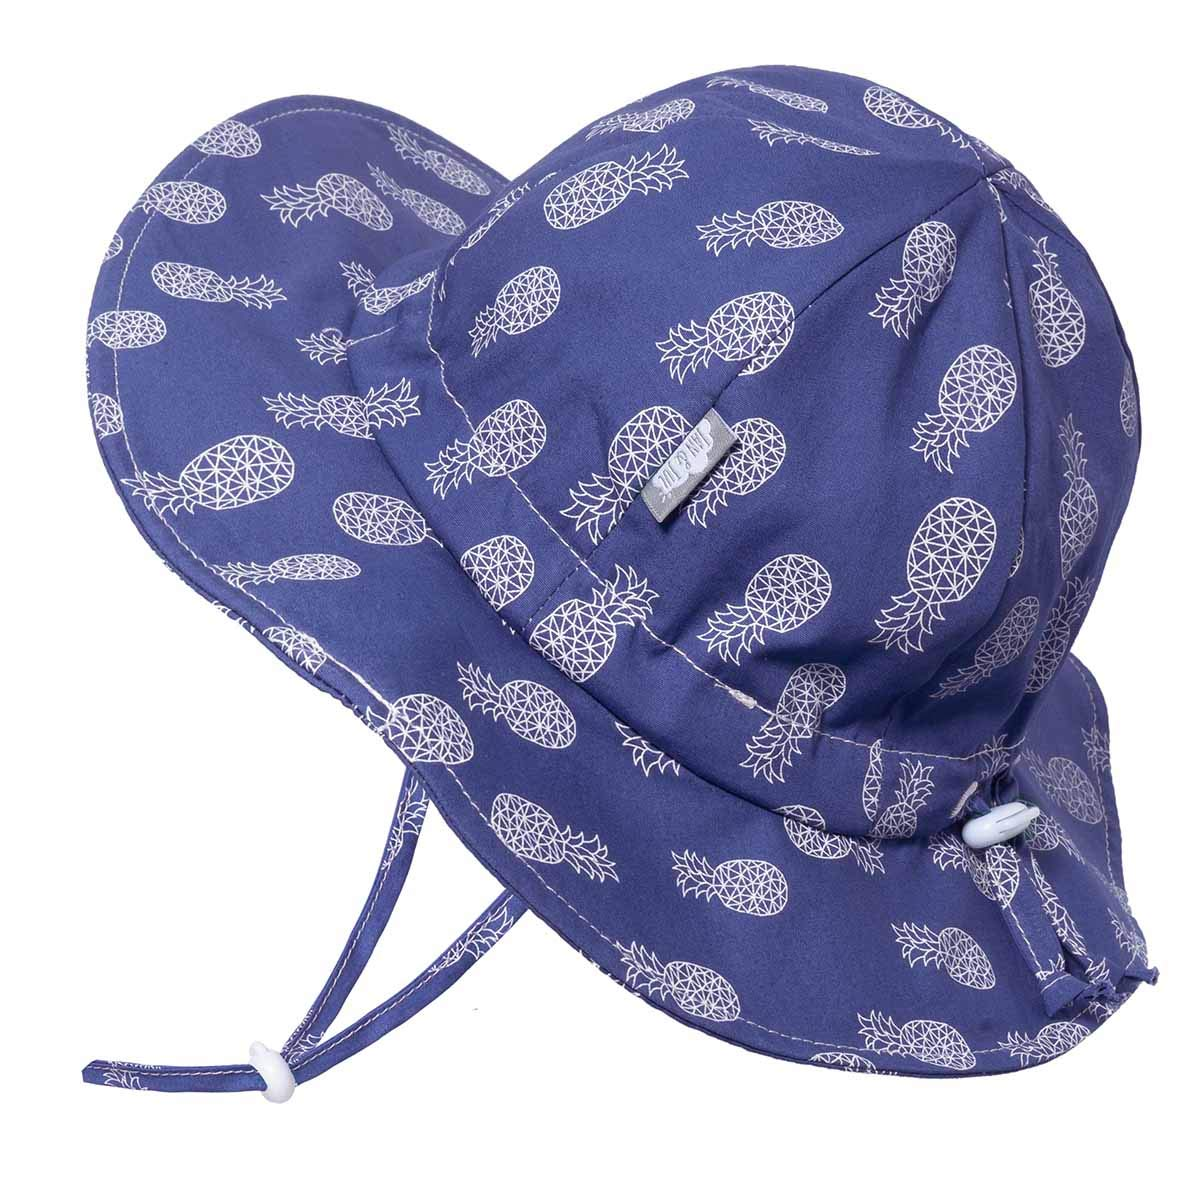 Jan /& Jul Baby Toddler Kids Breathable Cotton Sun Hat 50 UPF Adjustable for Grow Stay-on